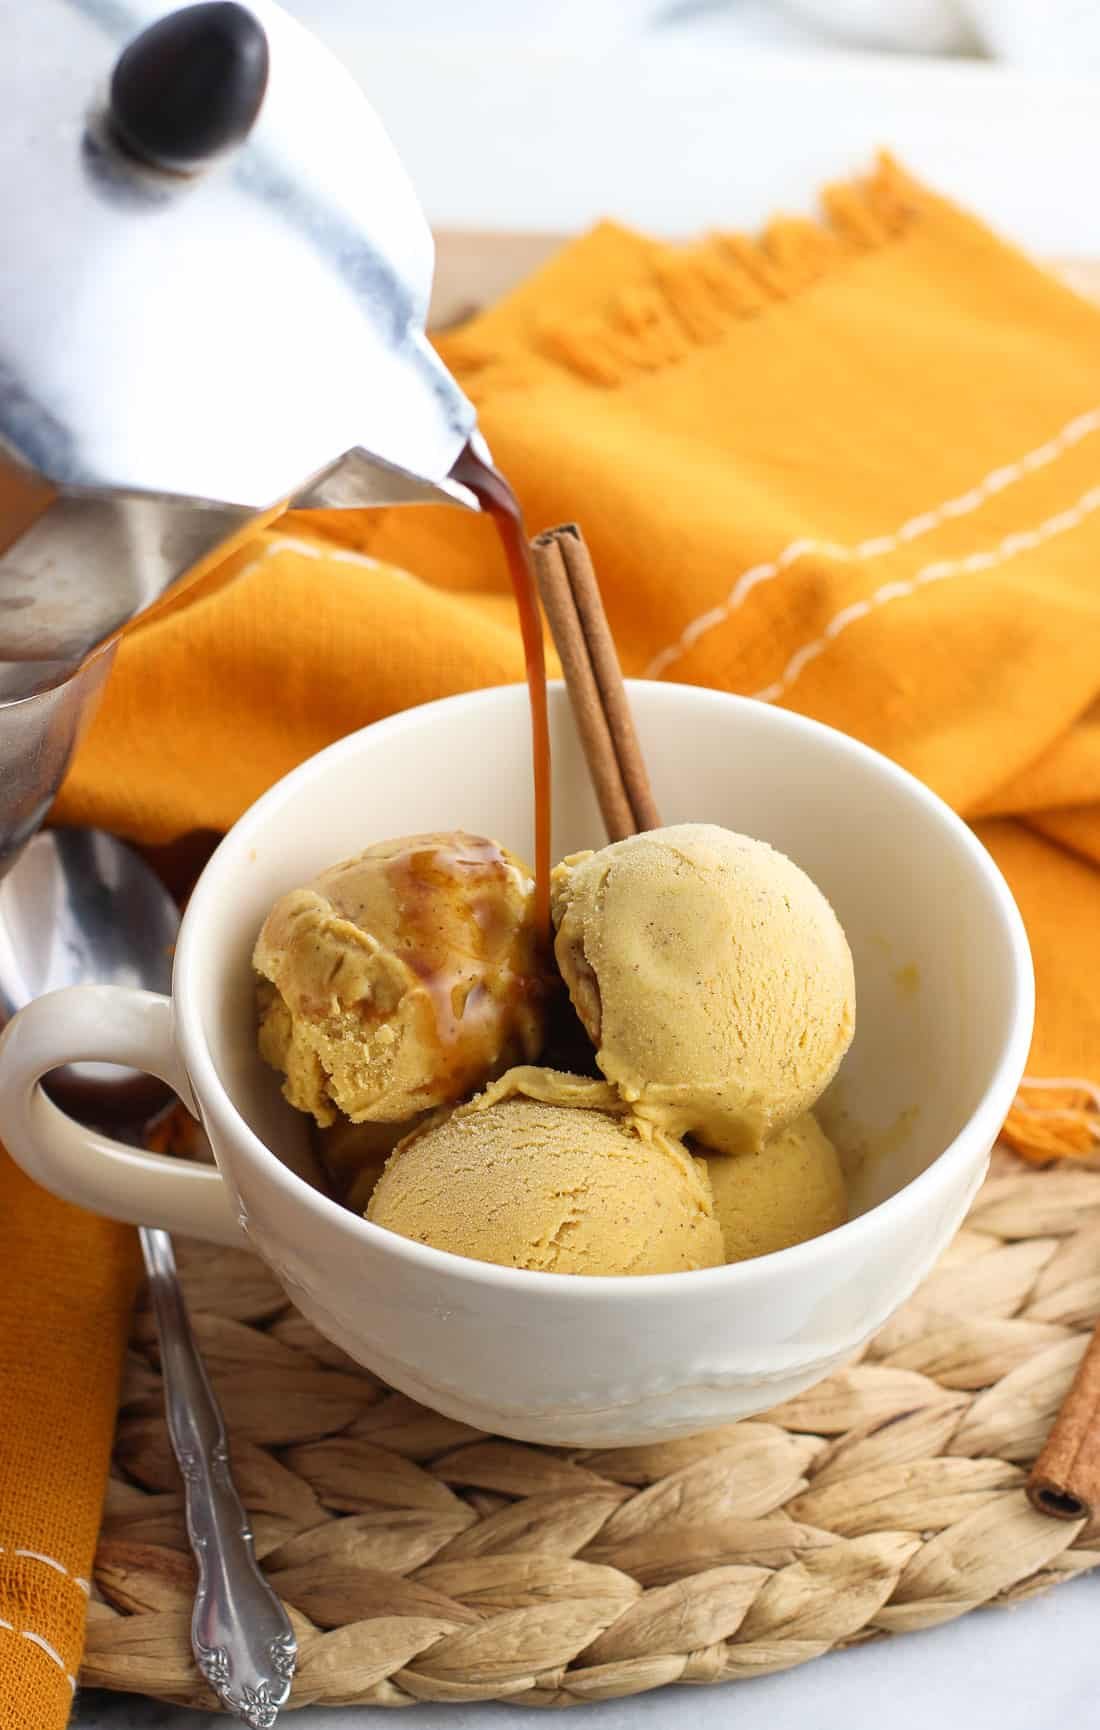 Four small scoops of pumpkin gelato in a large mug with espresso being poured over top, all garnished with a whole cinnamon stick